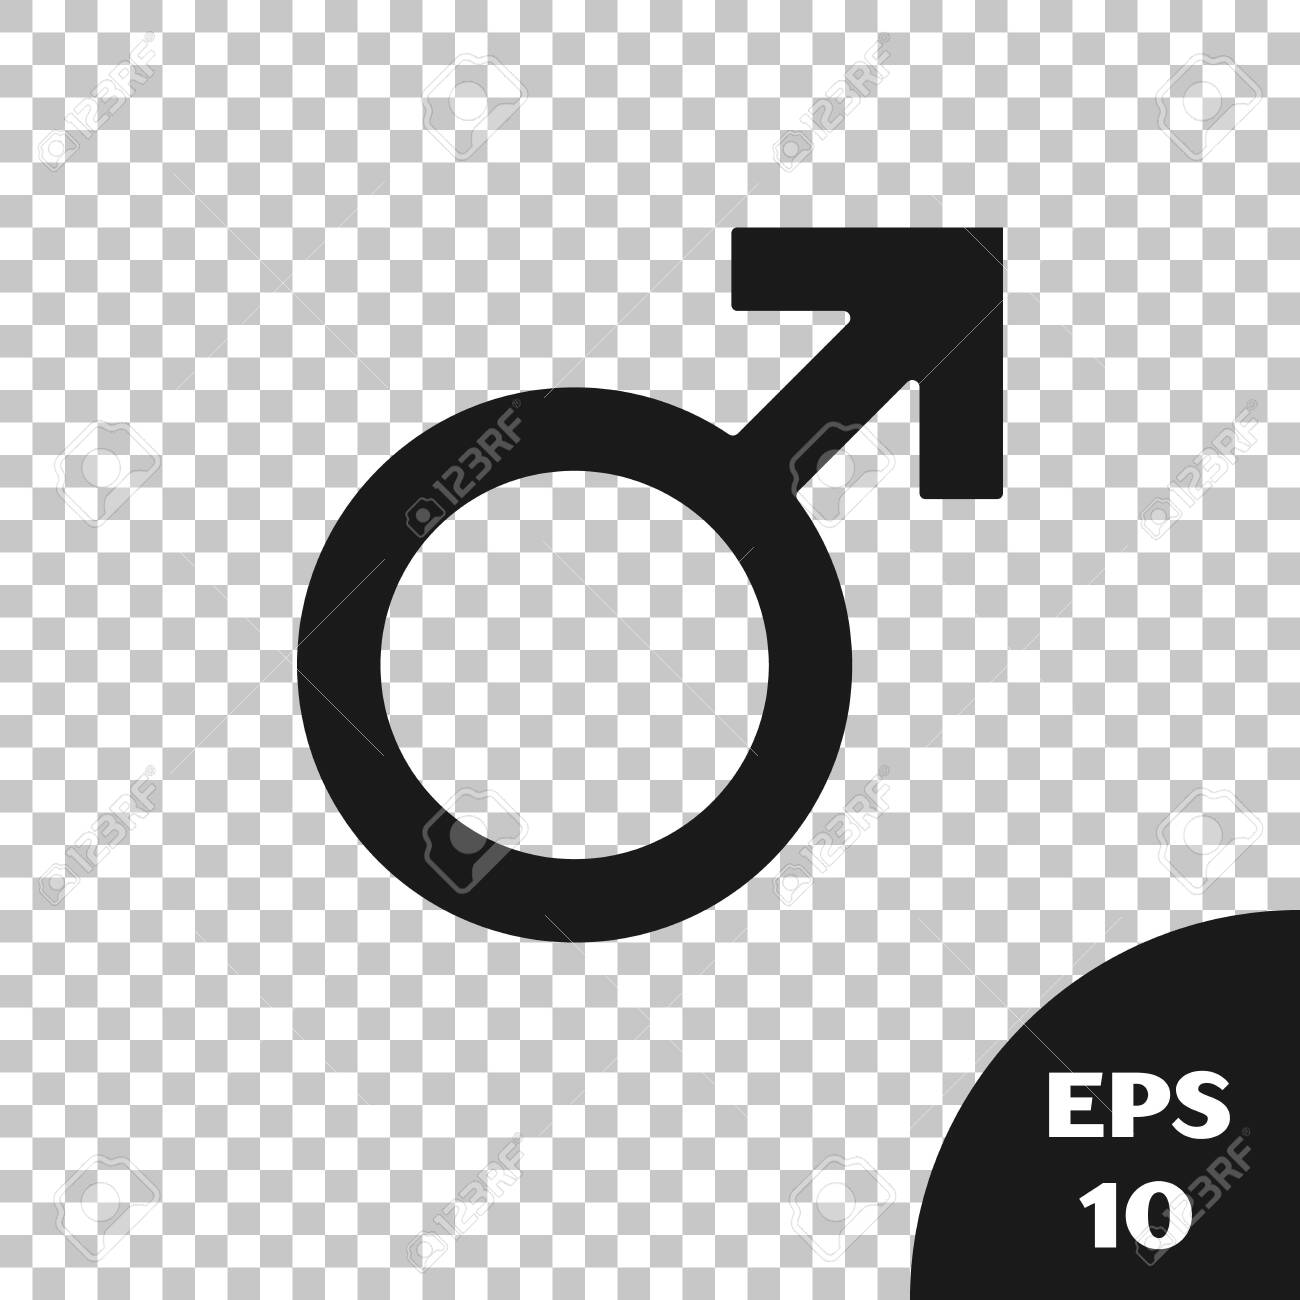 black male gender symbol icon isolated on transparent background royalty free cliparts vectors and stock illustration image 128591938 black male gender symbol icon isolated on transparent background